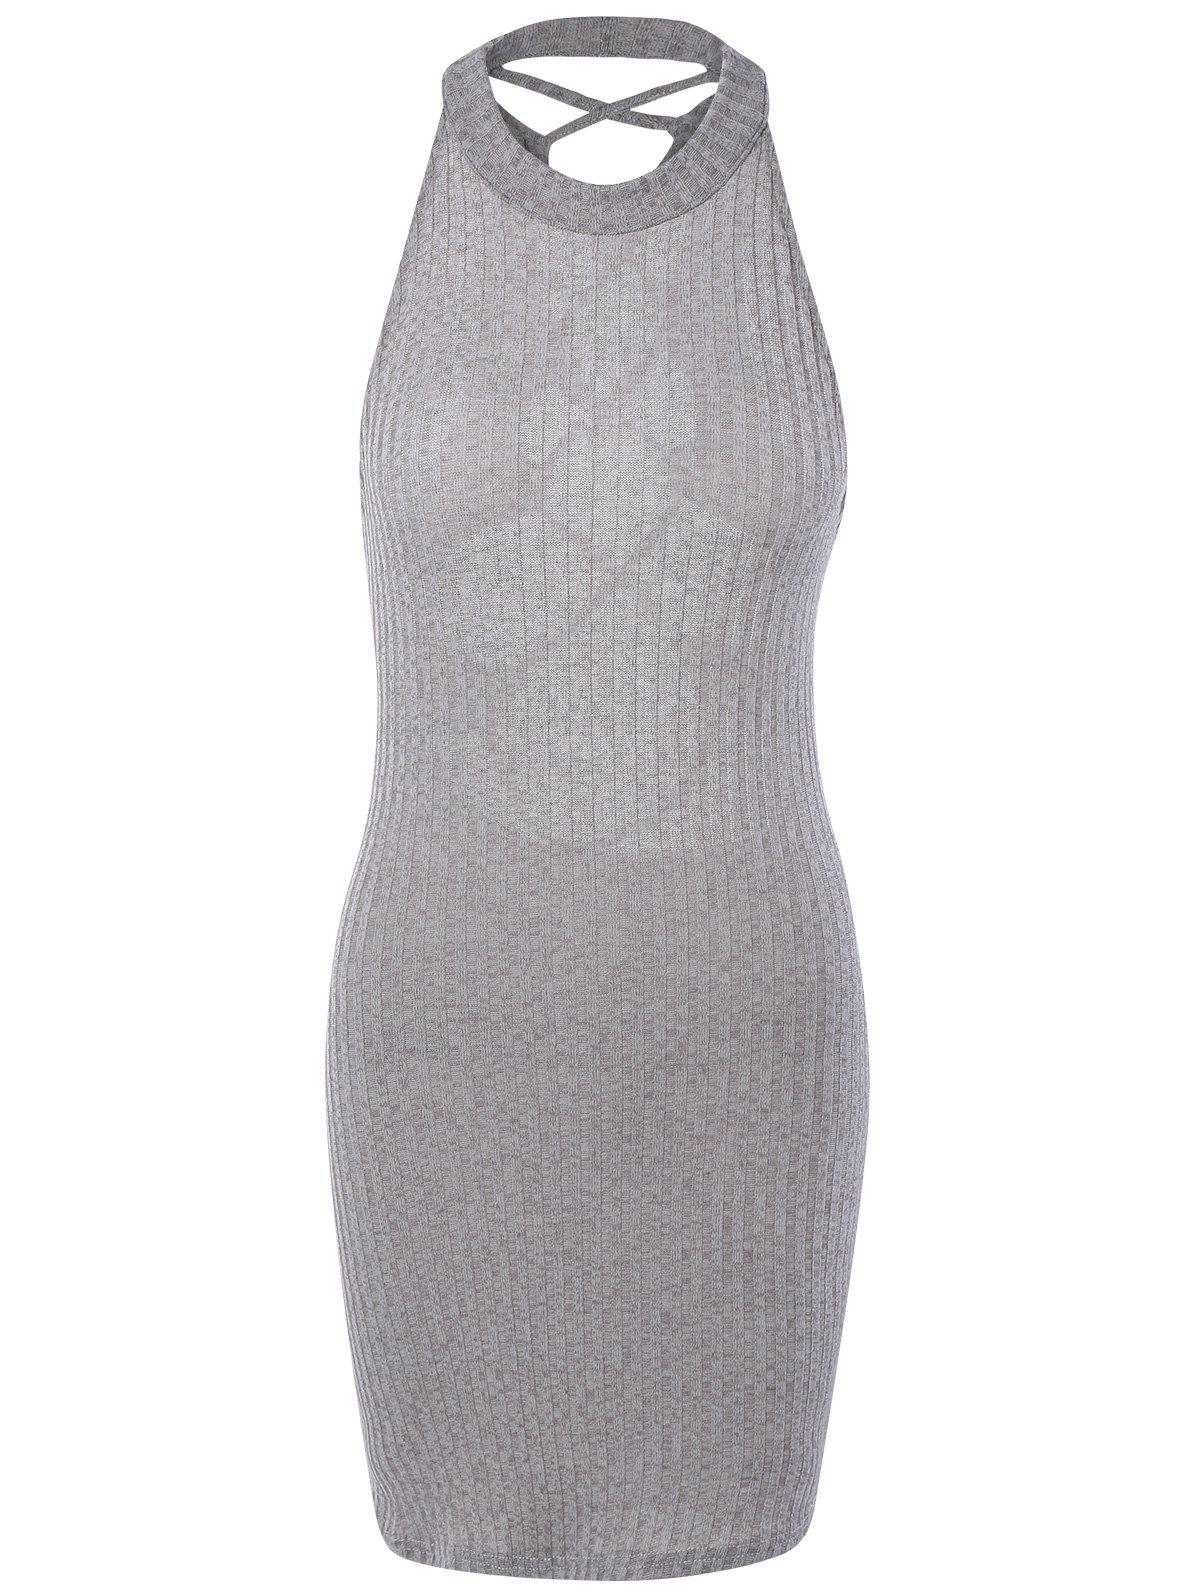 Hollow Out Ribbed Bodycon Bandage Mini Dress 191297401